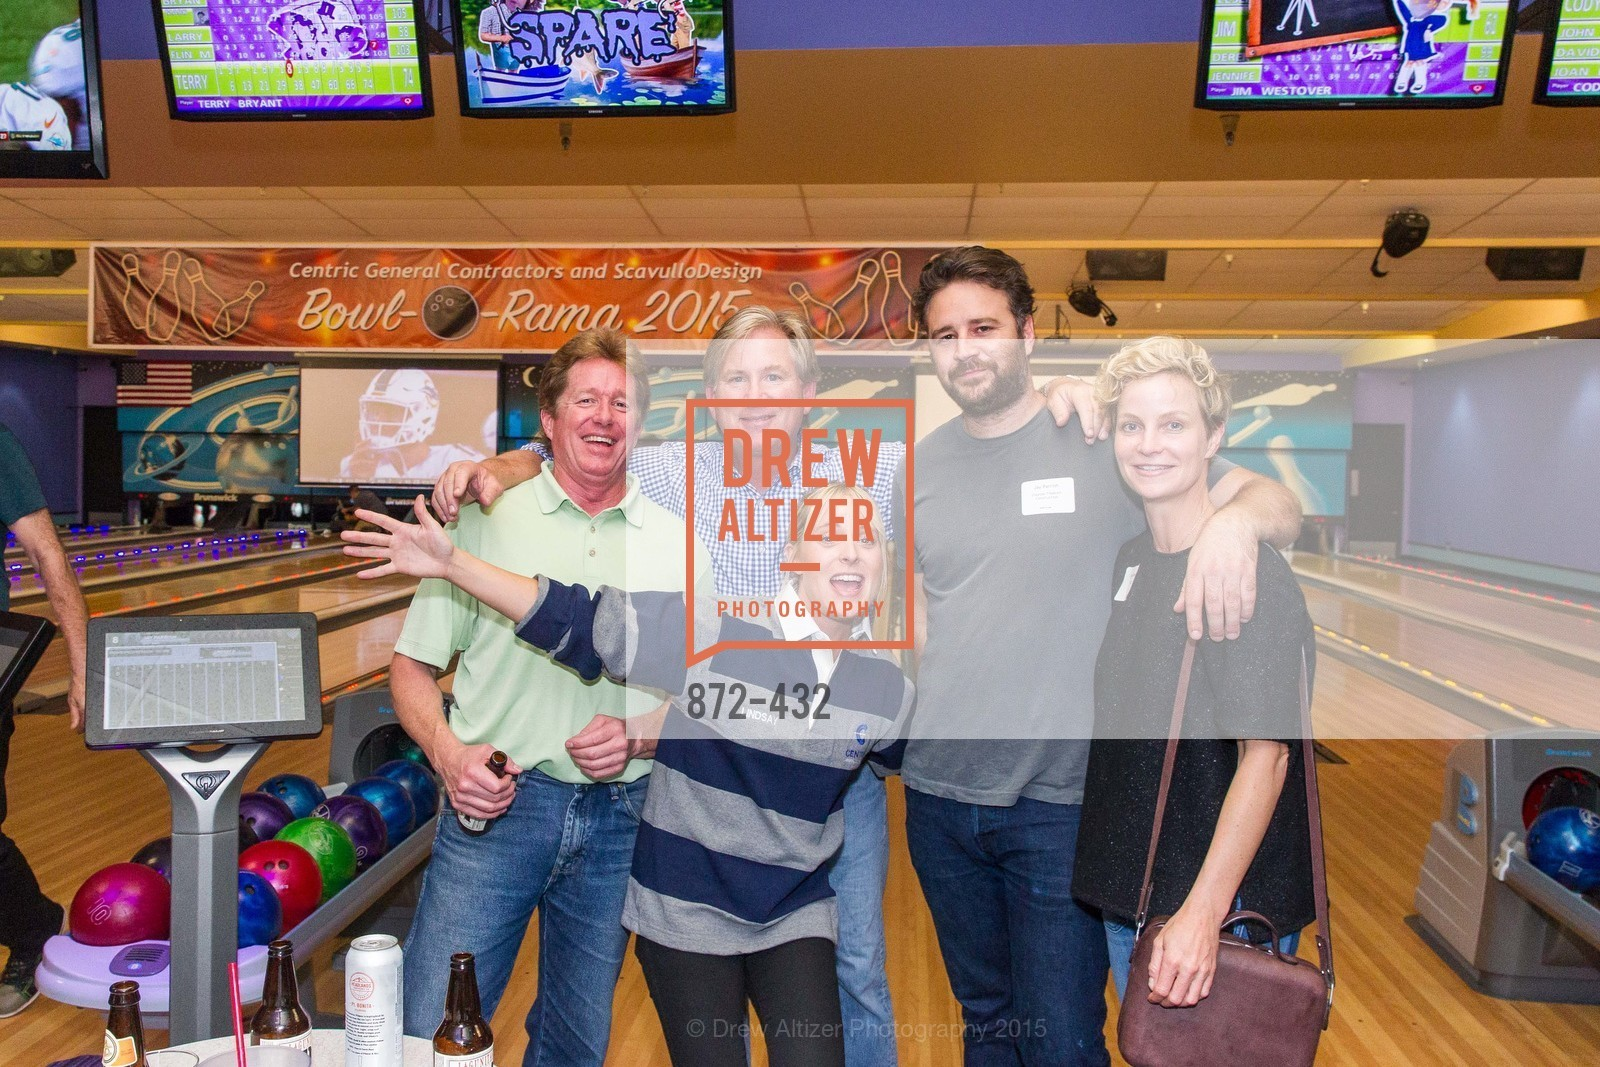 Steve Welch, Don Horton, Lindsay Herdell, Jay Parrish, Erica Reid, ScavulloDesign Centric Builders Bowling Party, Presidio Bowl. 93 Moraga Ave, October 29th, 2015,Drew Altizer, Drew Altizer Photography, full-service agency, private events, San Francisco photographer, photographer california